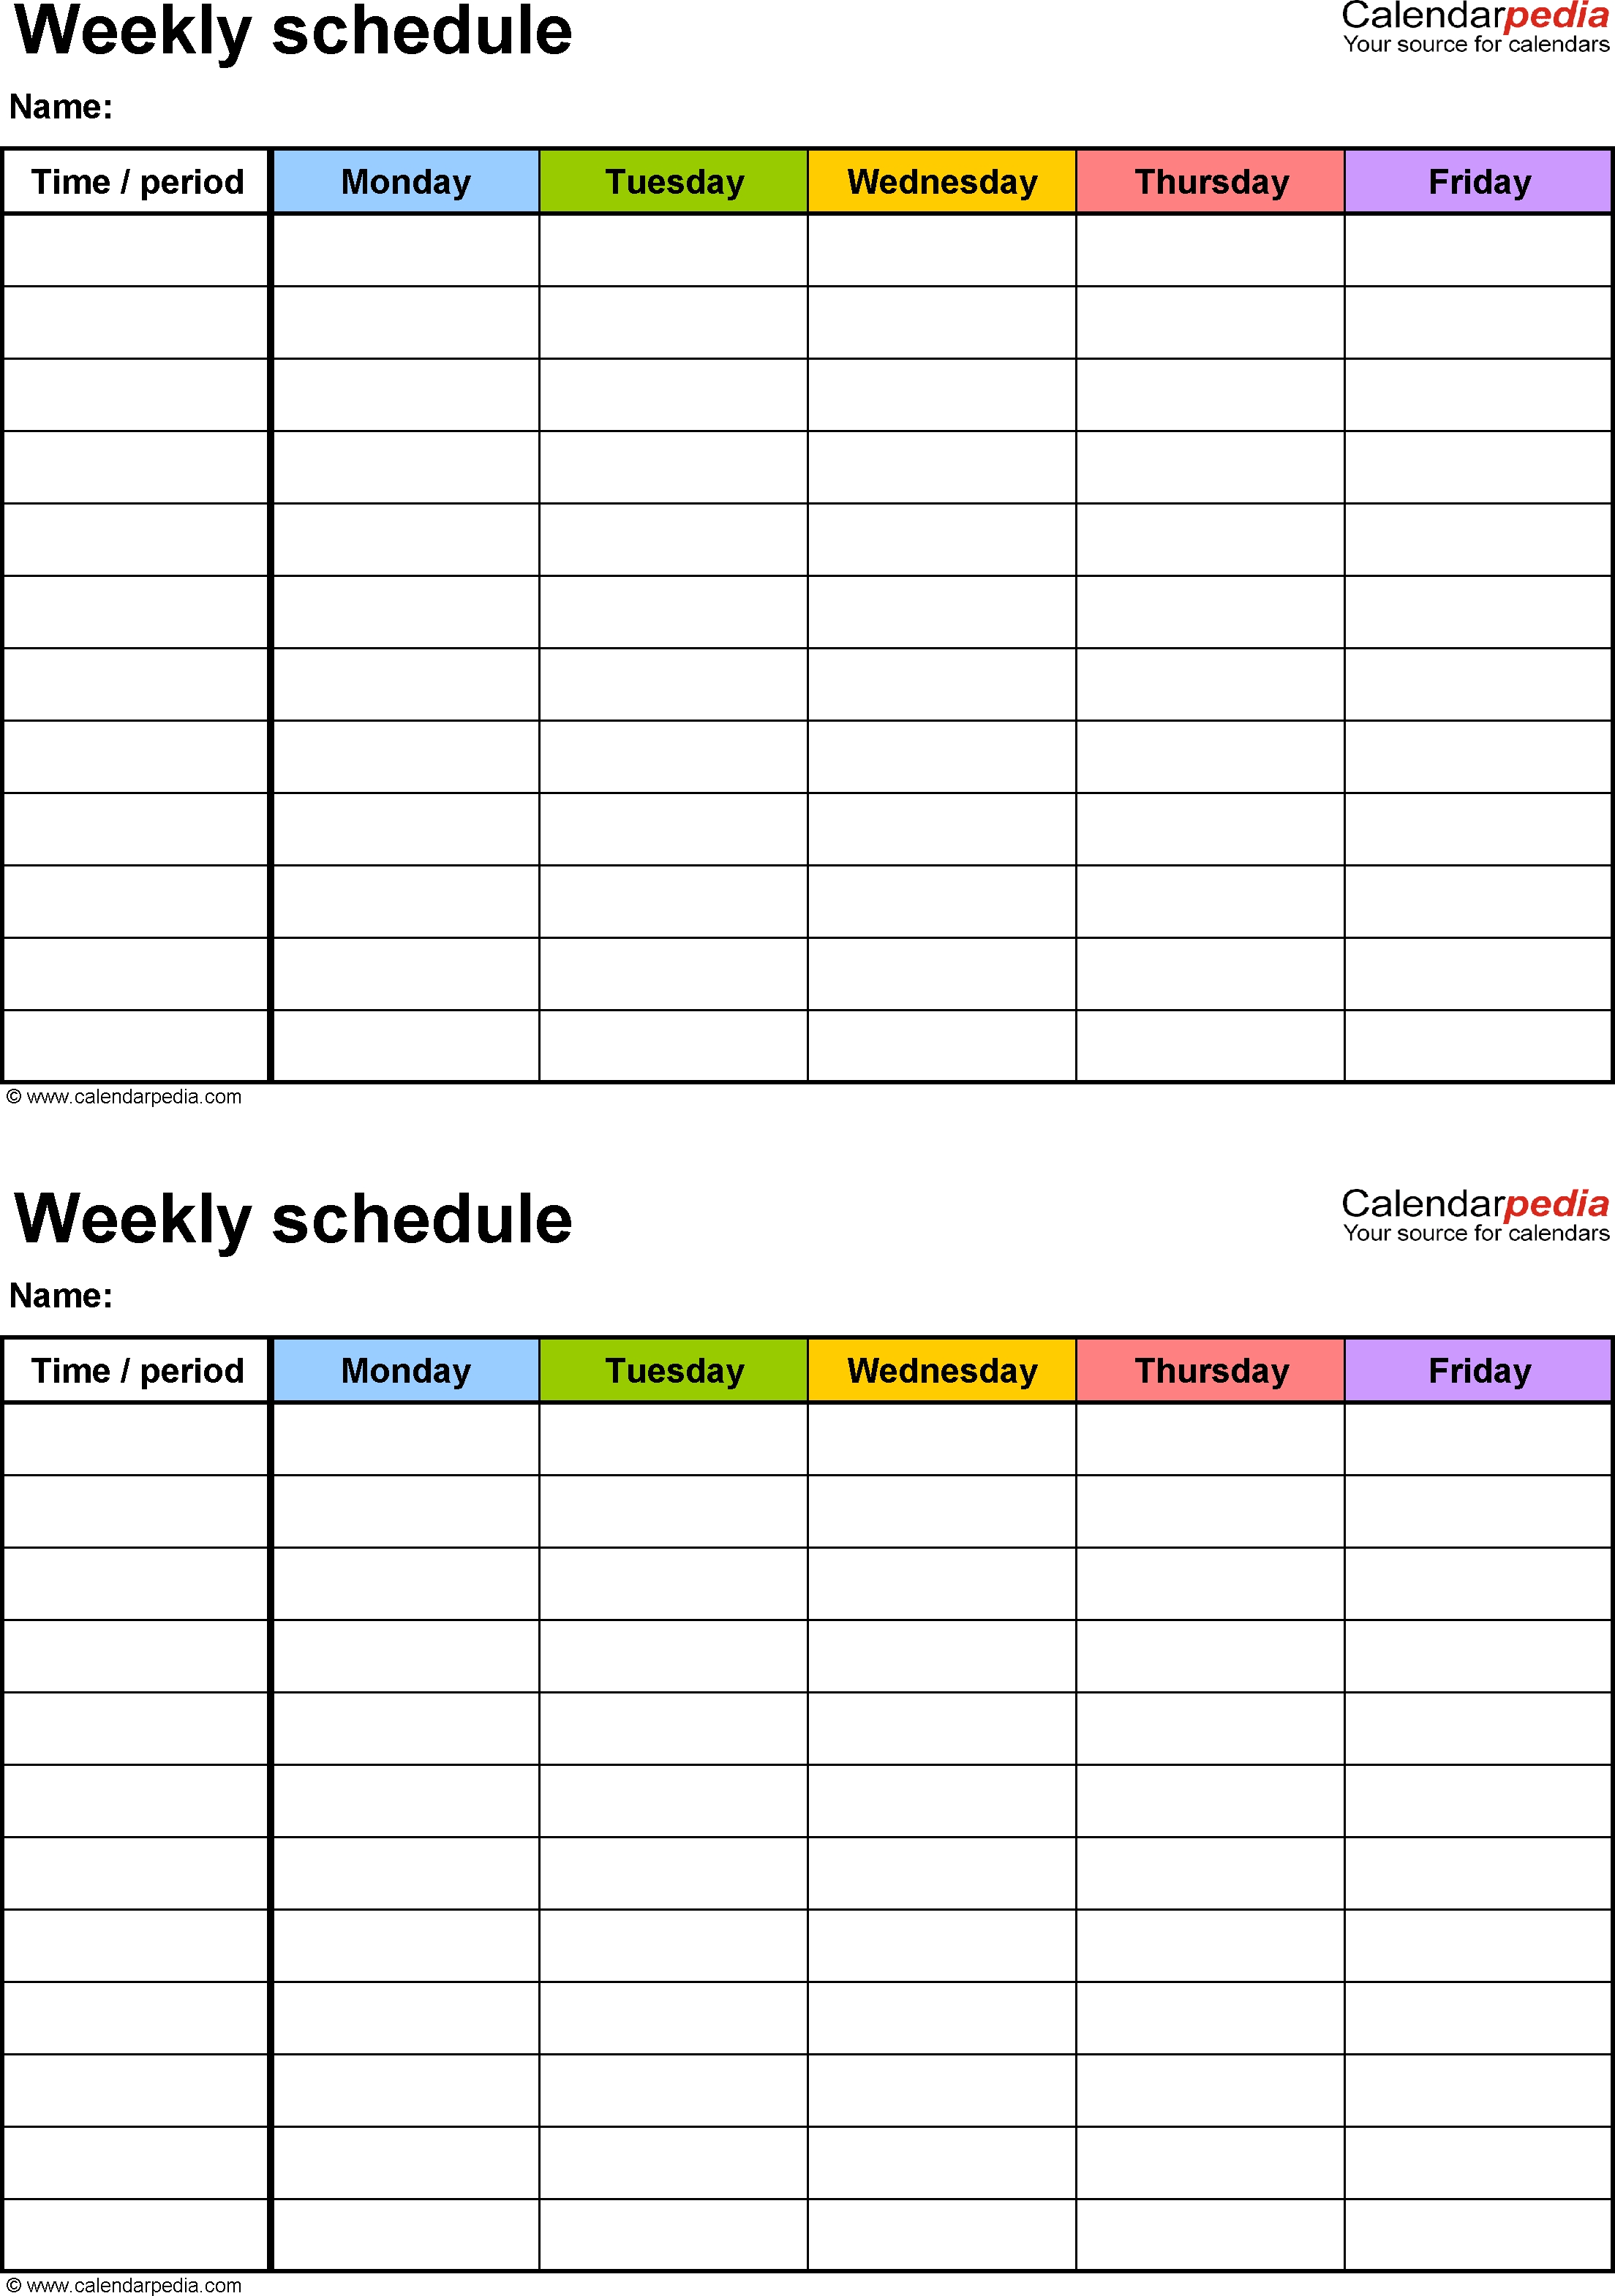 Free Weekly Schedule Templates For Word - 18 Templates  Blank Weekly Calendar Template Free